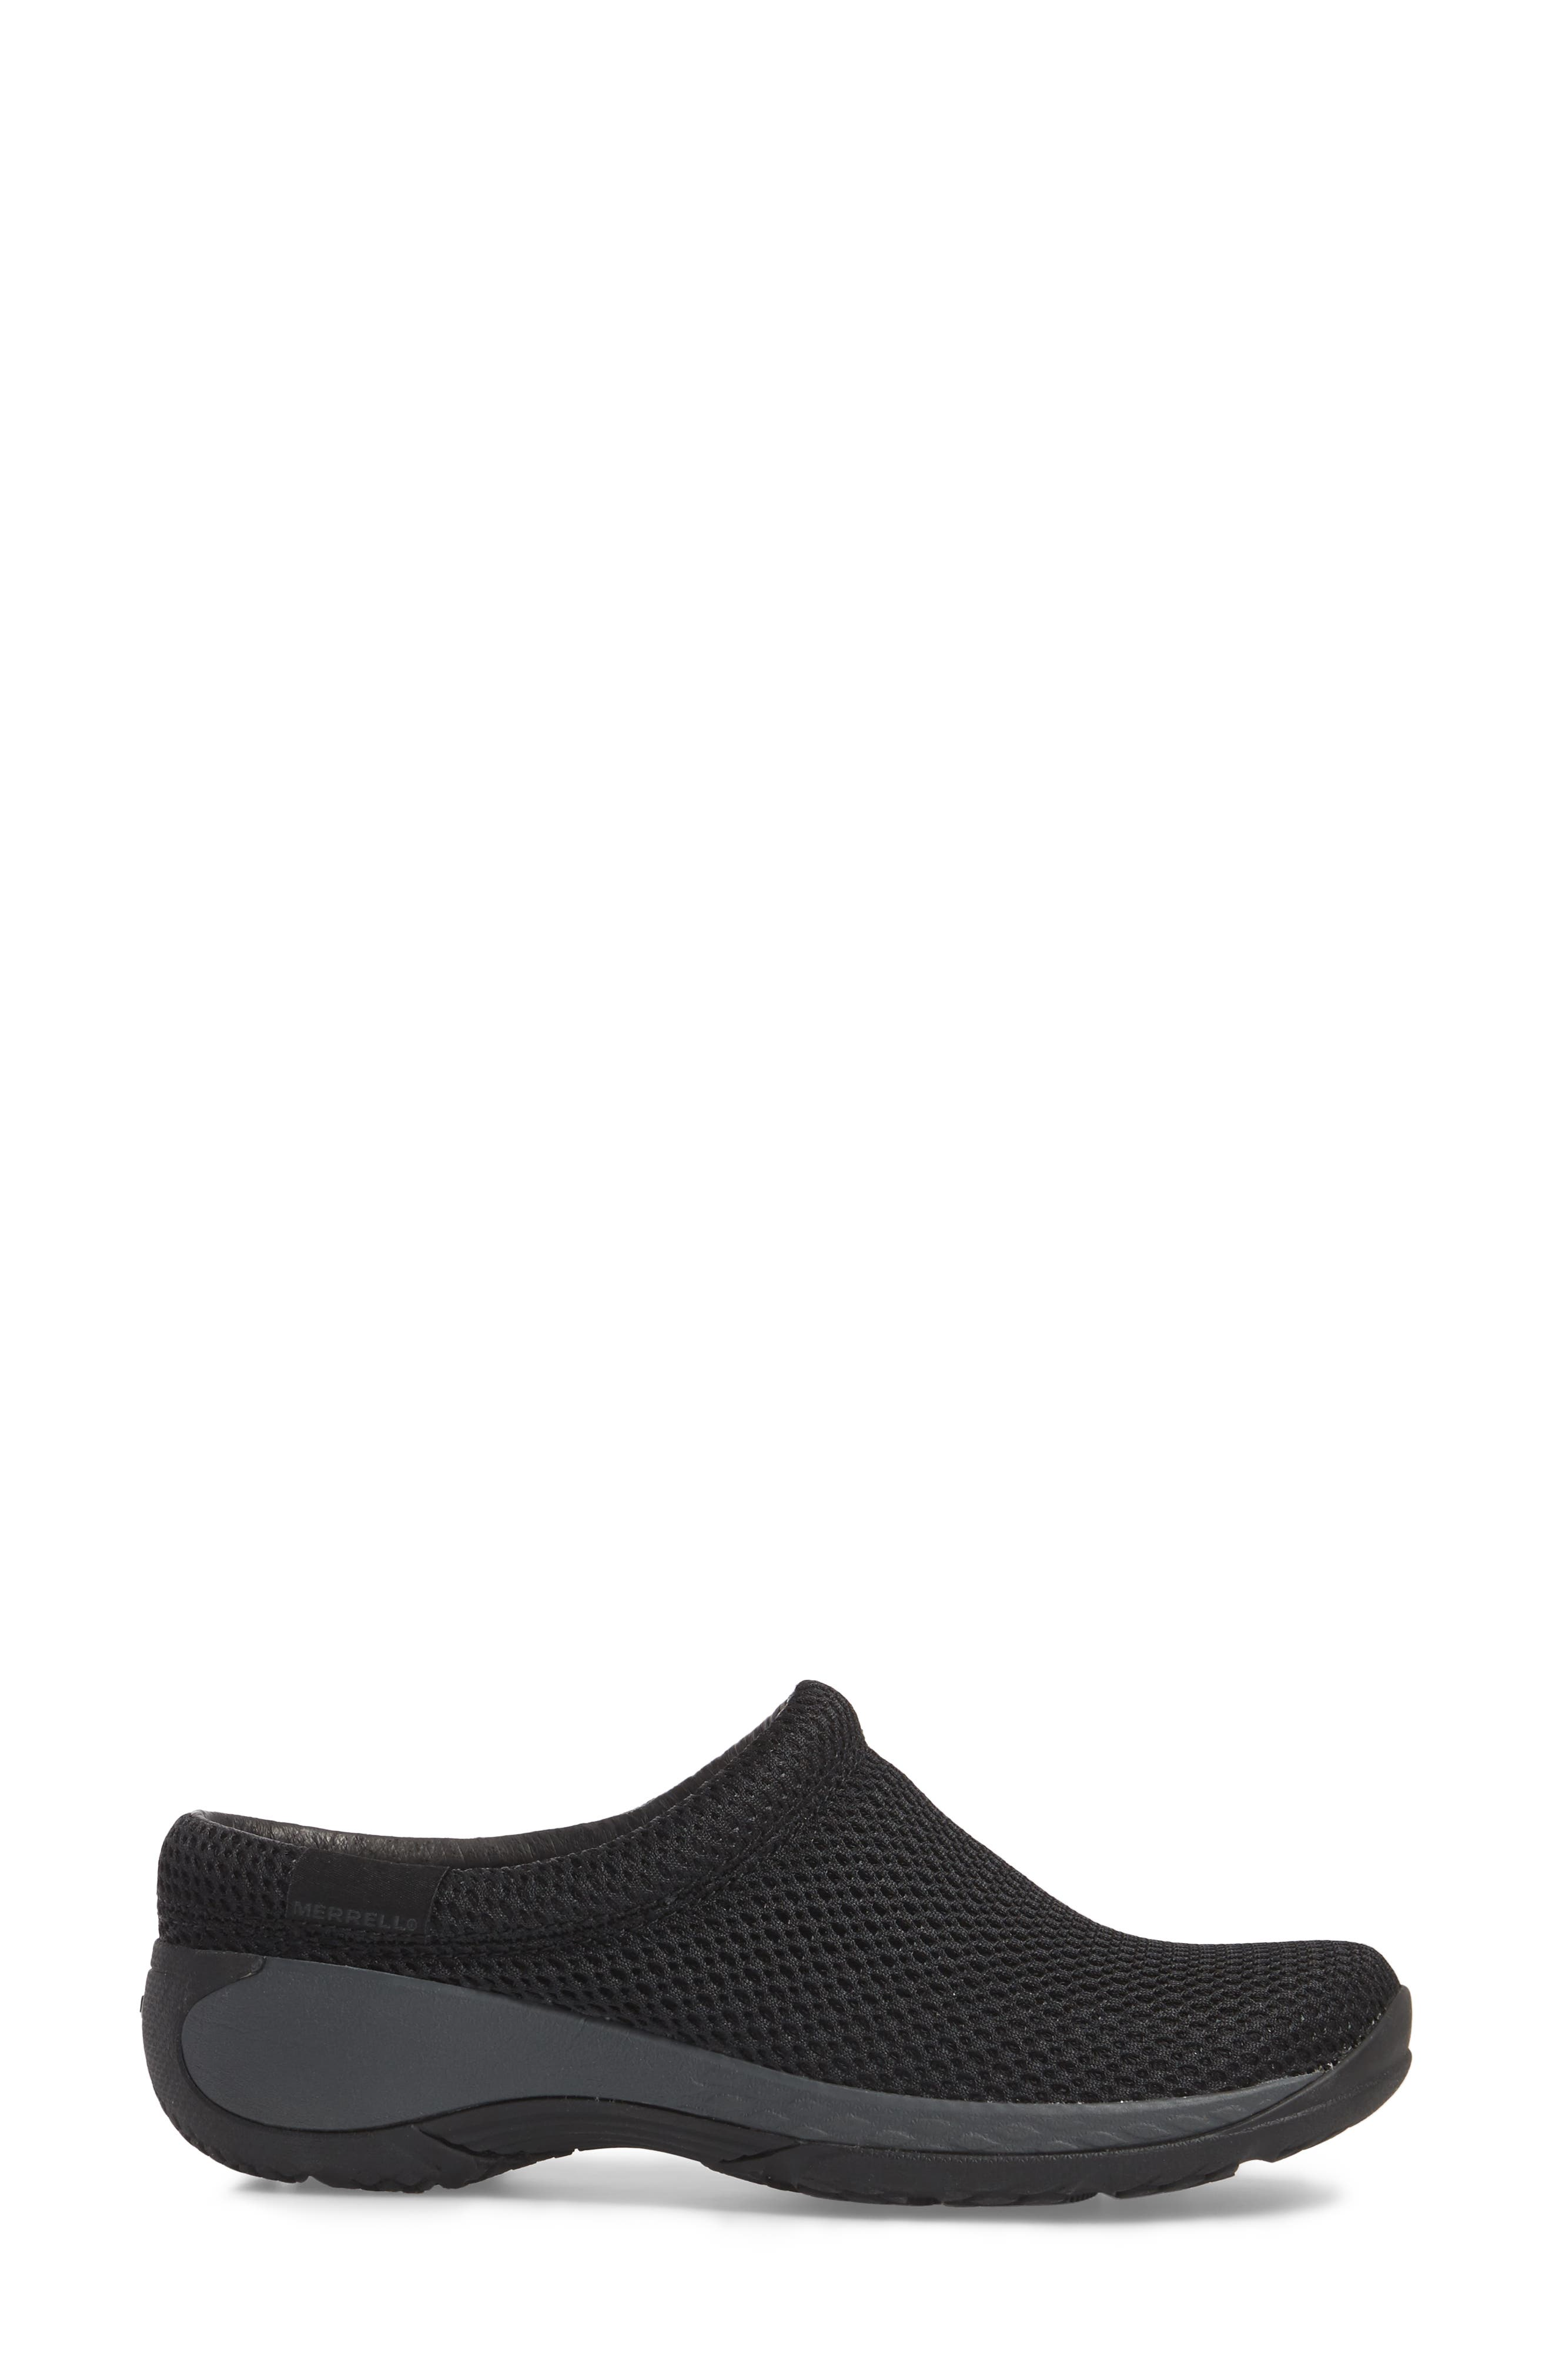 MERRELL, Encore Q2 Breeze Clog, Alternate thumbnail 3, color, BLACK